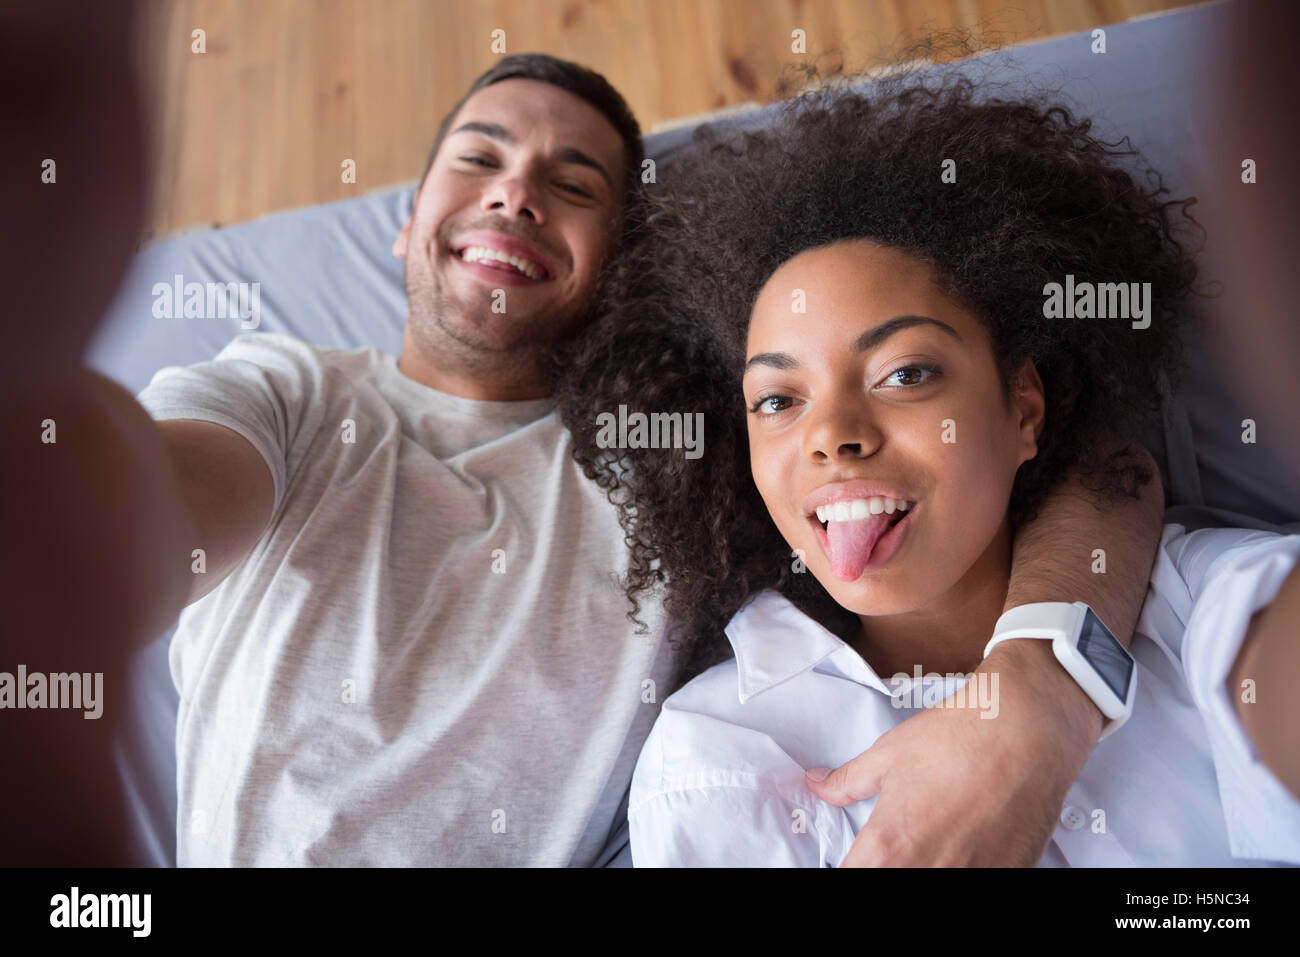 Funny couple putting our their tongues for photo - Stock Image